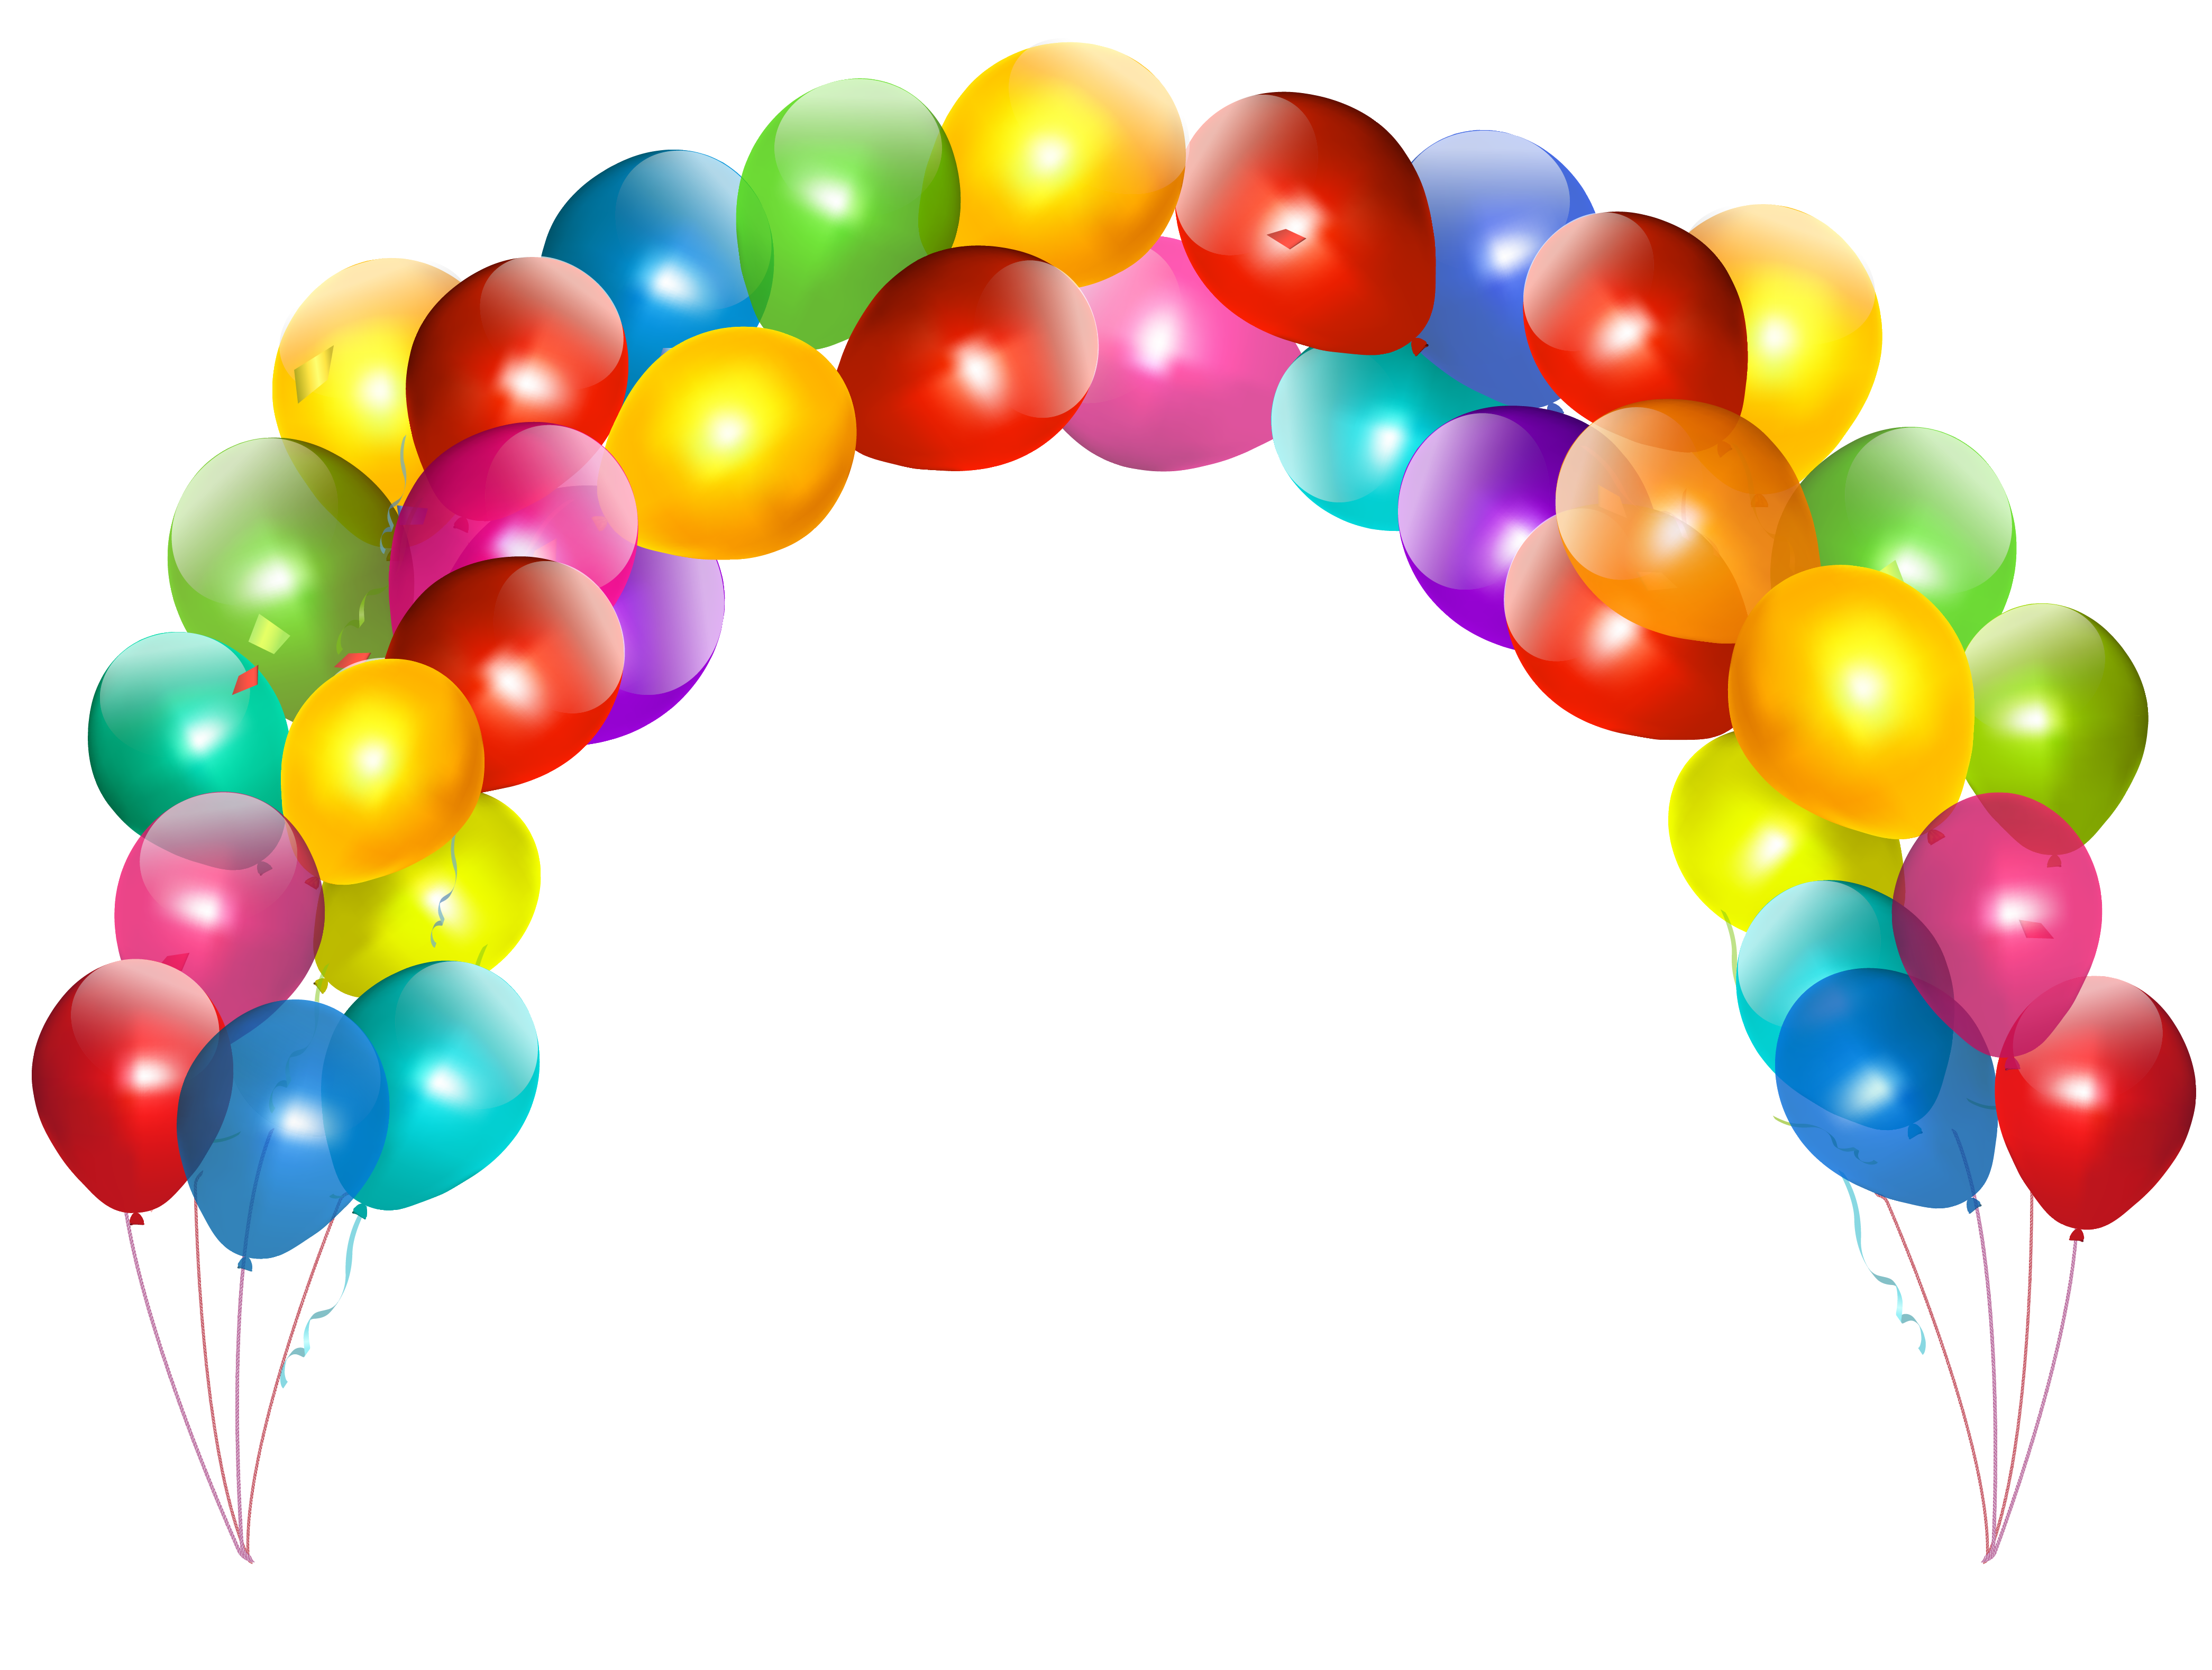 36 Ballon Png Free Cliparts That You Can Download To You Computer And